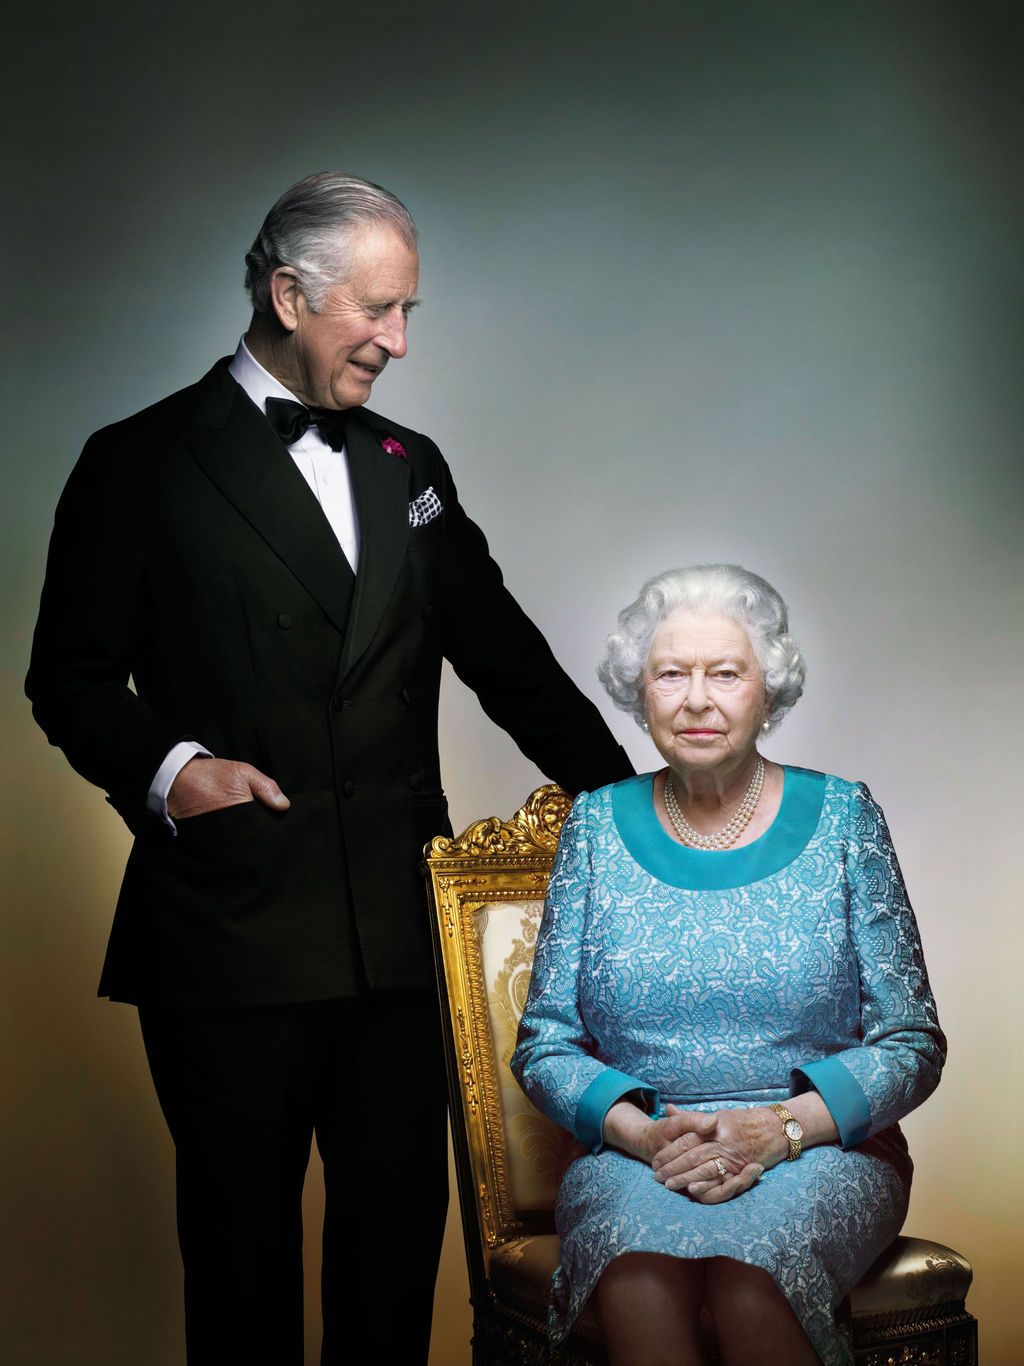 This photograph taken by Nick Knight is a portrait of Britain's Queen Elizabeth II and Prince Charles, taken in the White Drawing Room ...